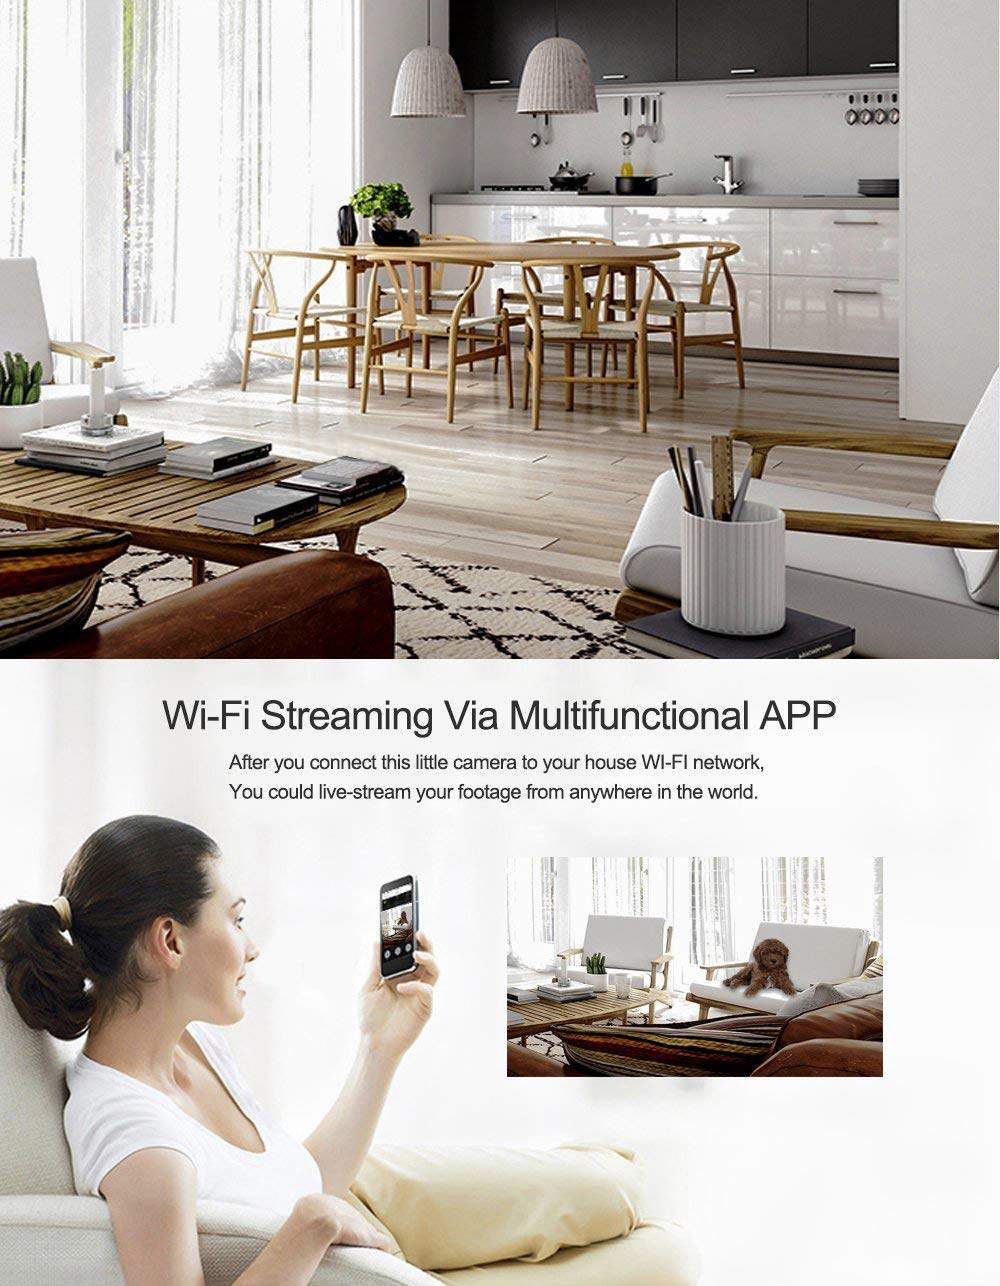 Night Vision Hidden Spy Camera QUANDU WiFi Smoke Detector Hidden Camera DVR Mini Nanny Cam with Motion Detection for Home Security Surveillance Apps for iOS Android PC Mac